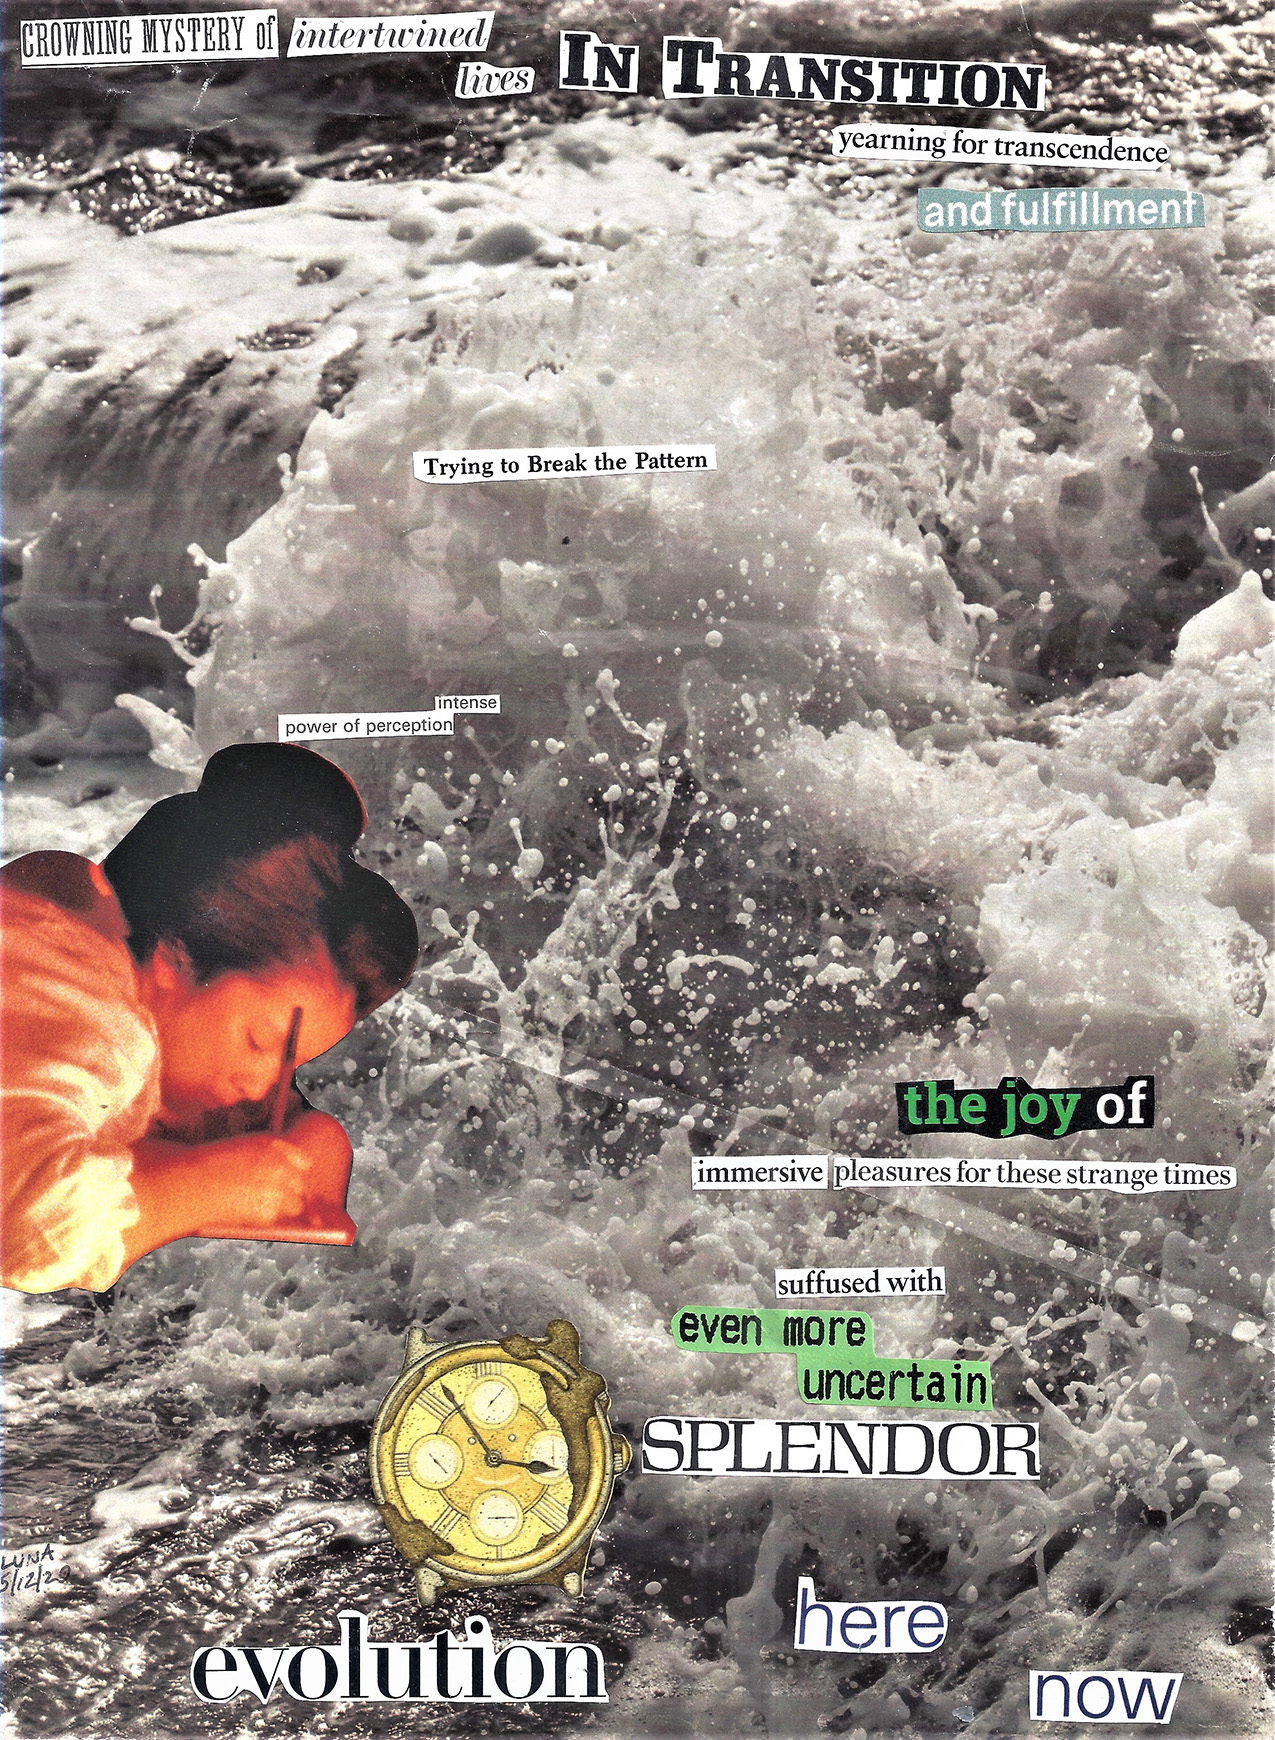 collage of images and found text. background is a black and white photo of whitewater, text reads: CROWNING MYSTERY of intertwined lives In Transition yearning for transcendence and fulfillment Trying to Break the Pattern intense power of perception the joy of immersive pleasures for these strange times suffused with even more uncertain SPLENDOR evolution here now